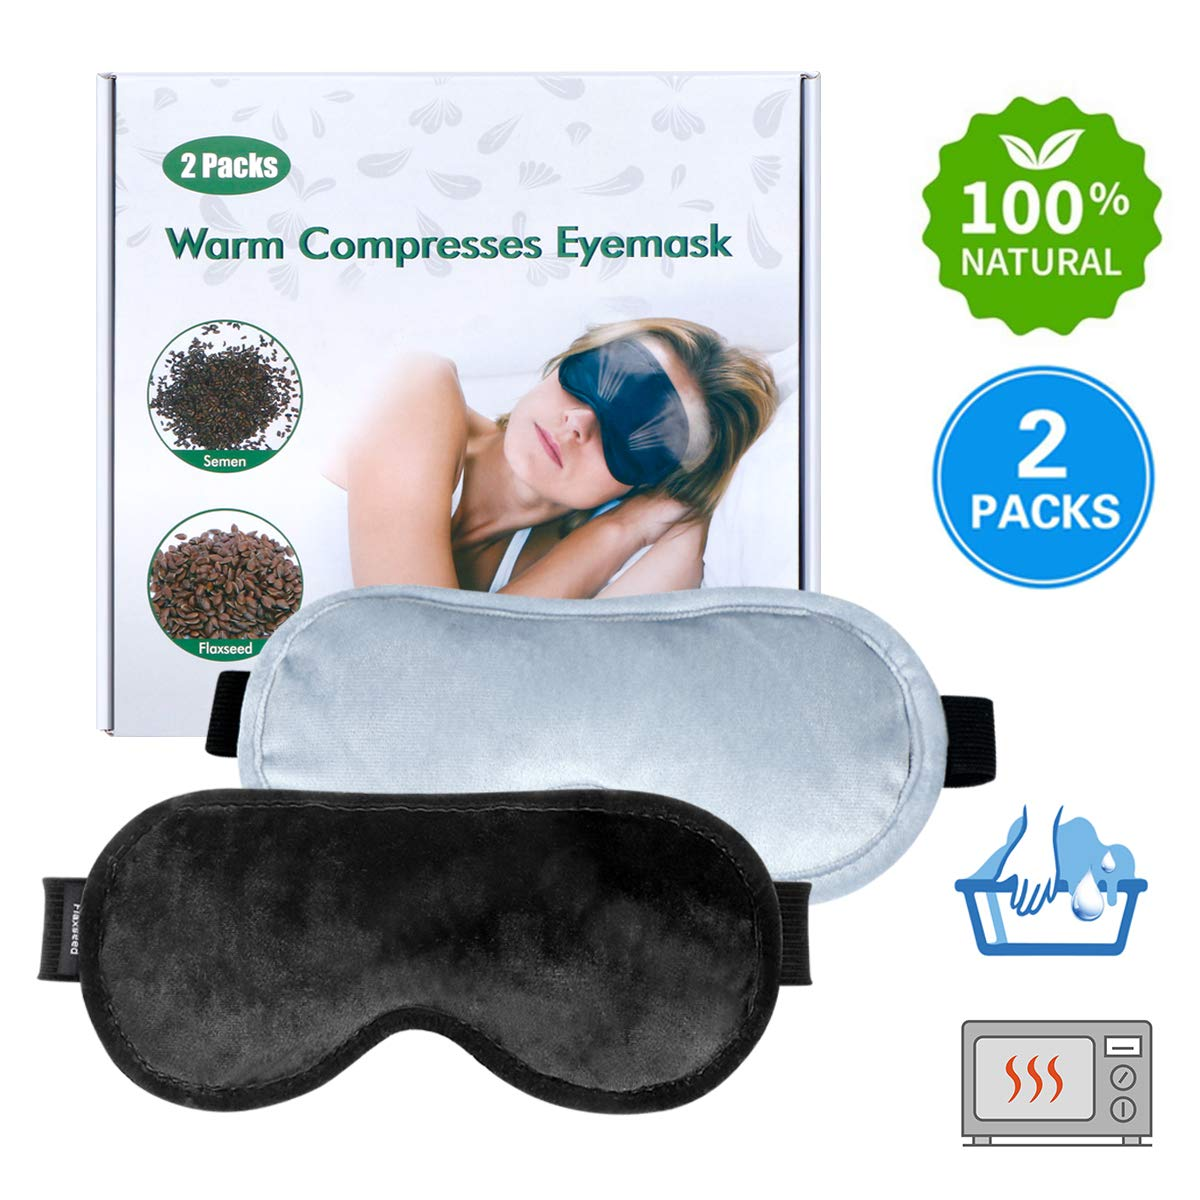 Dry Eye Mask Moist Heat Eye Compress(2 Packs), TOPOINT Microwave Hot Eye Mask with Washable Cover, Flaxseed Cassia Seed Sleep Mask Healthy Therapies by Topoint